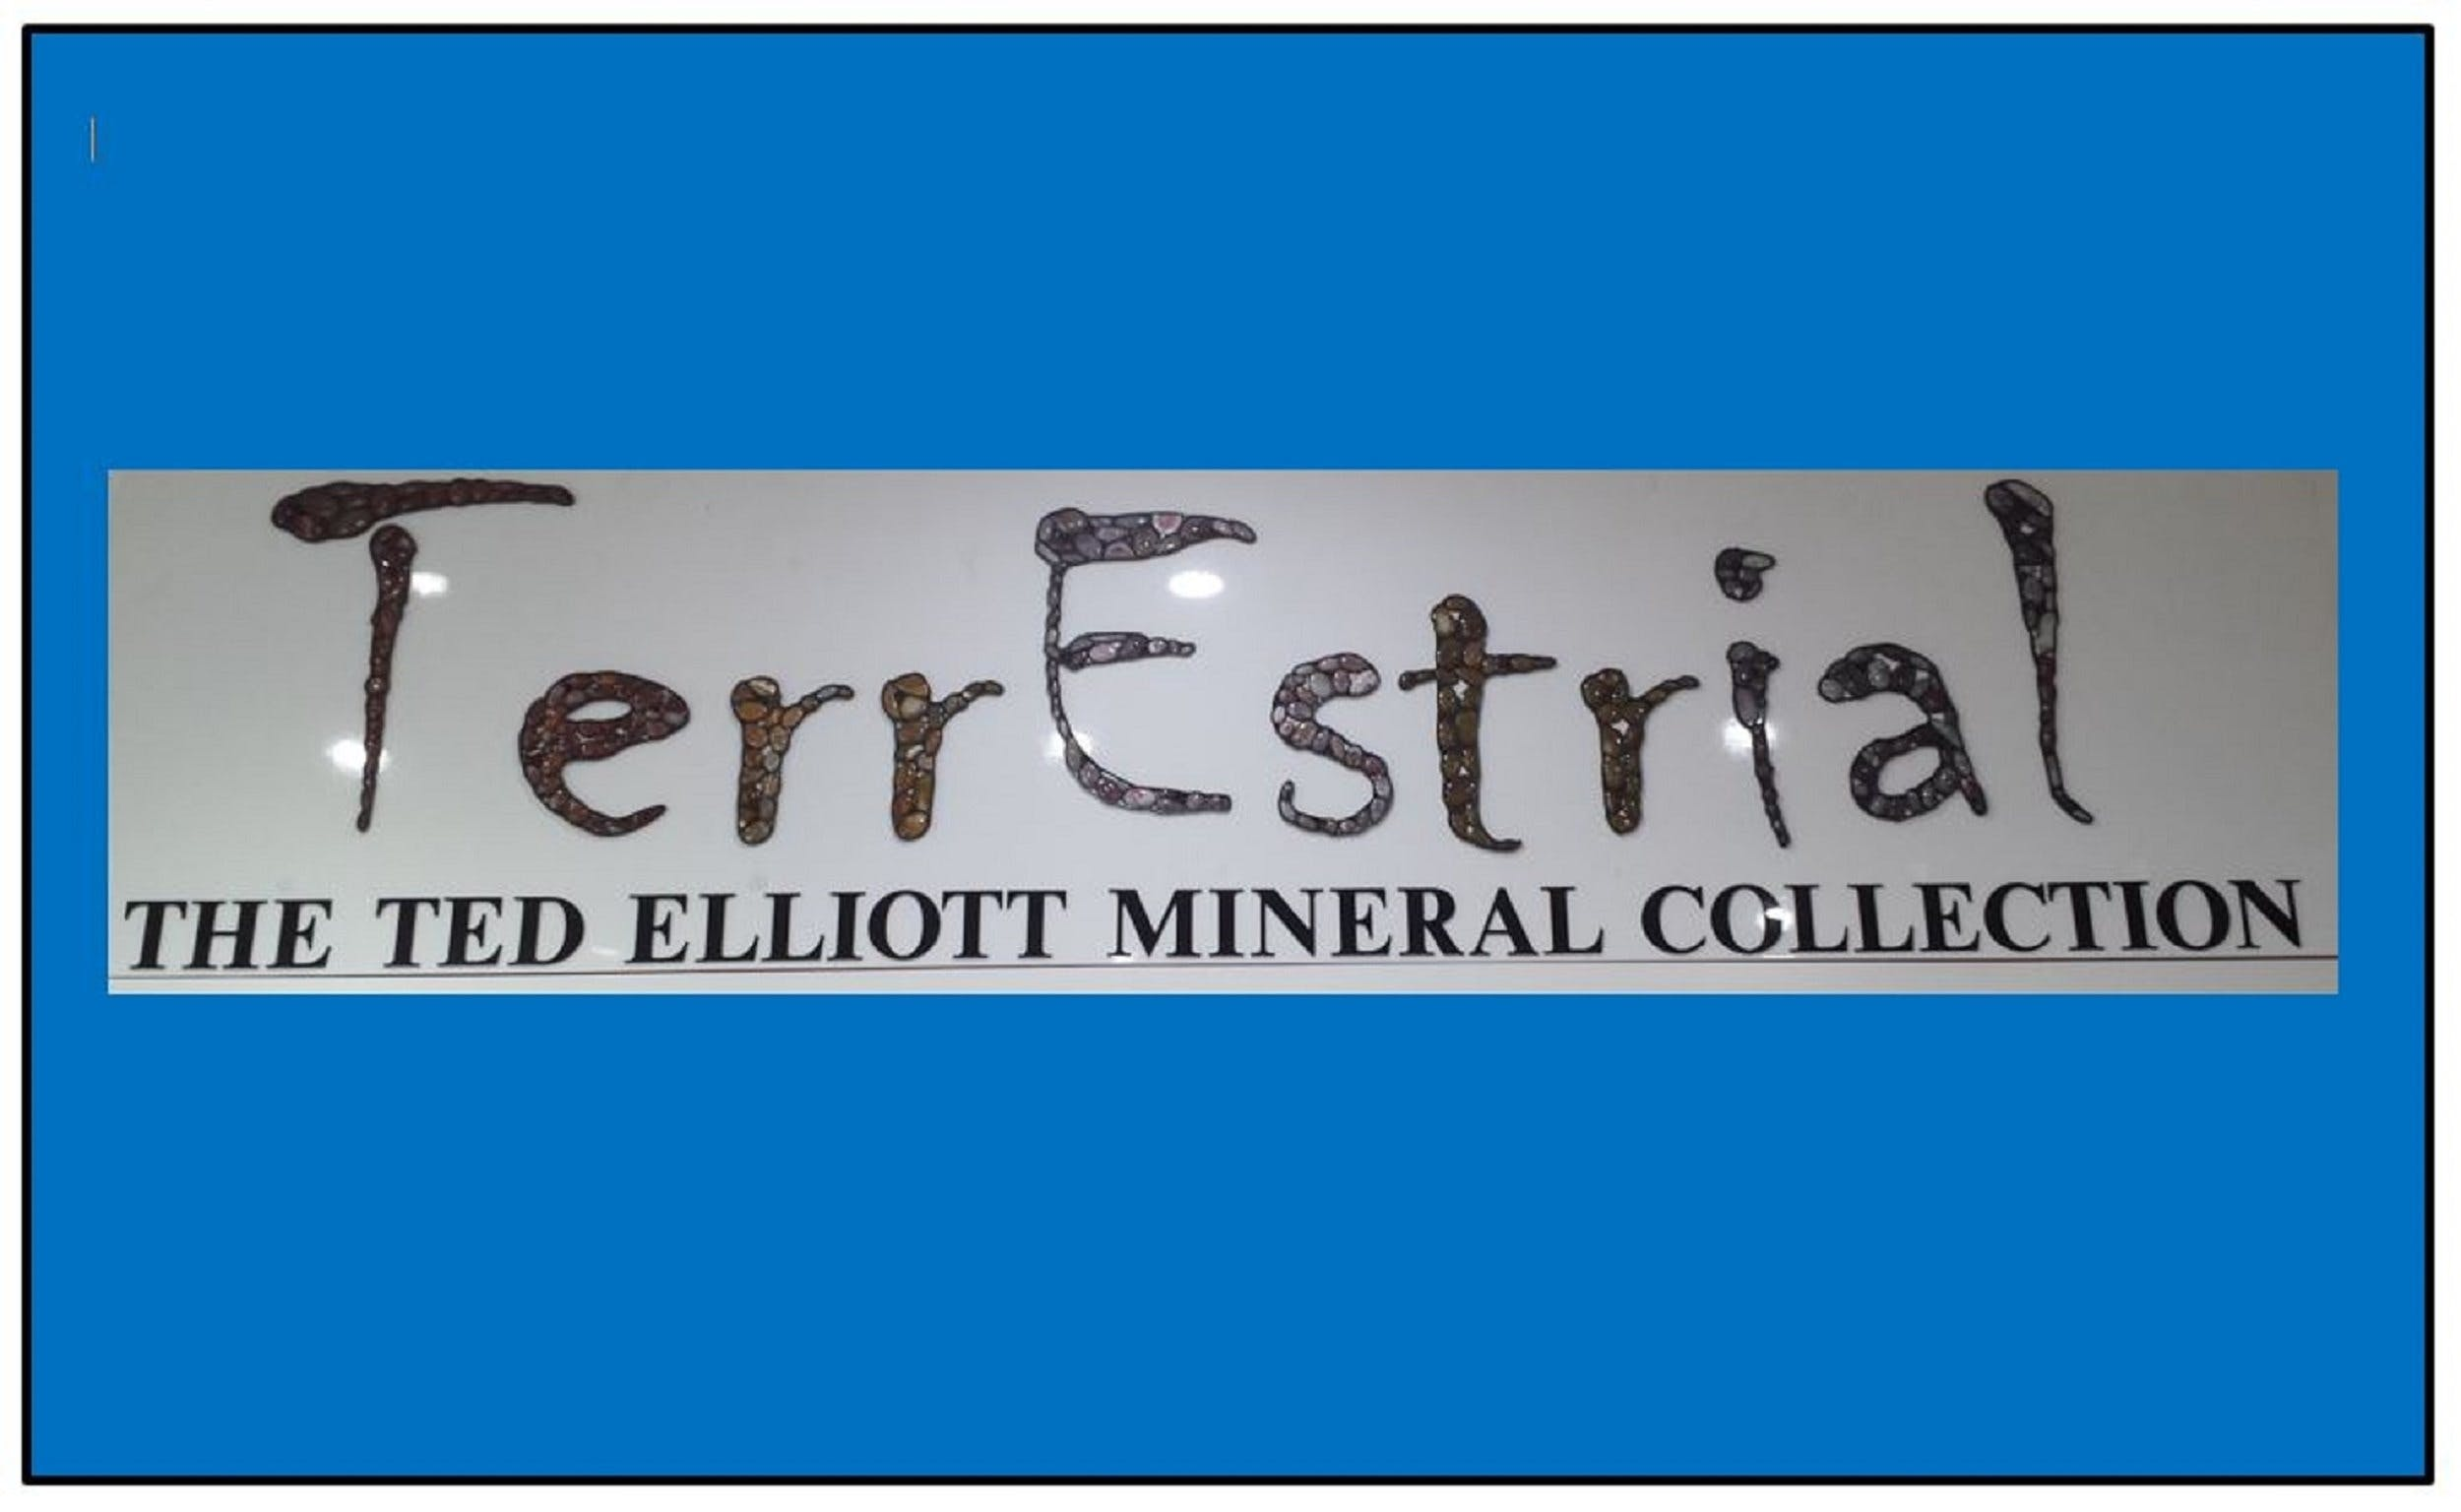 The Ted Elliott Mineral Collection - Tourism Cairns